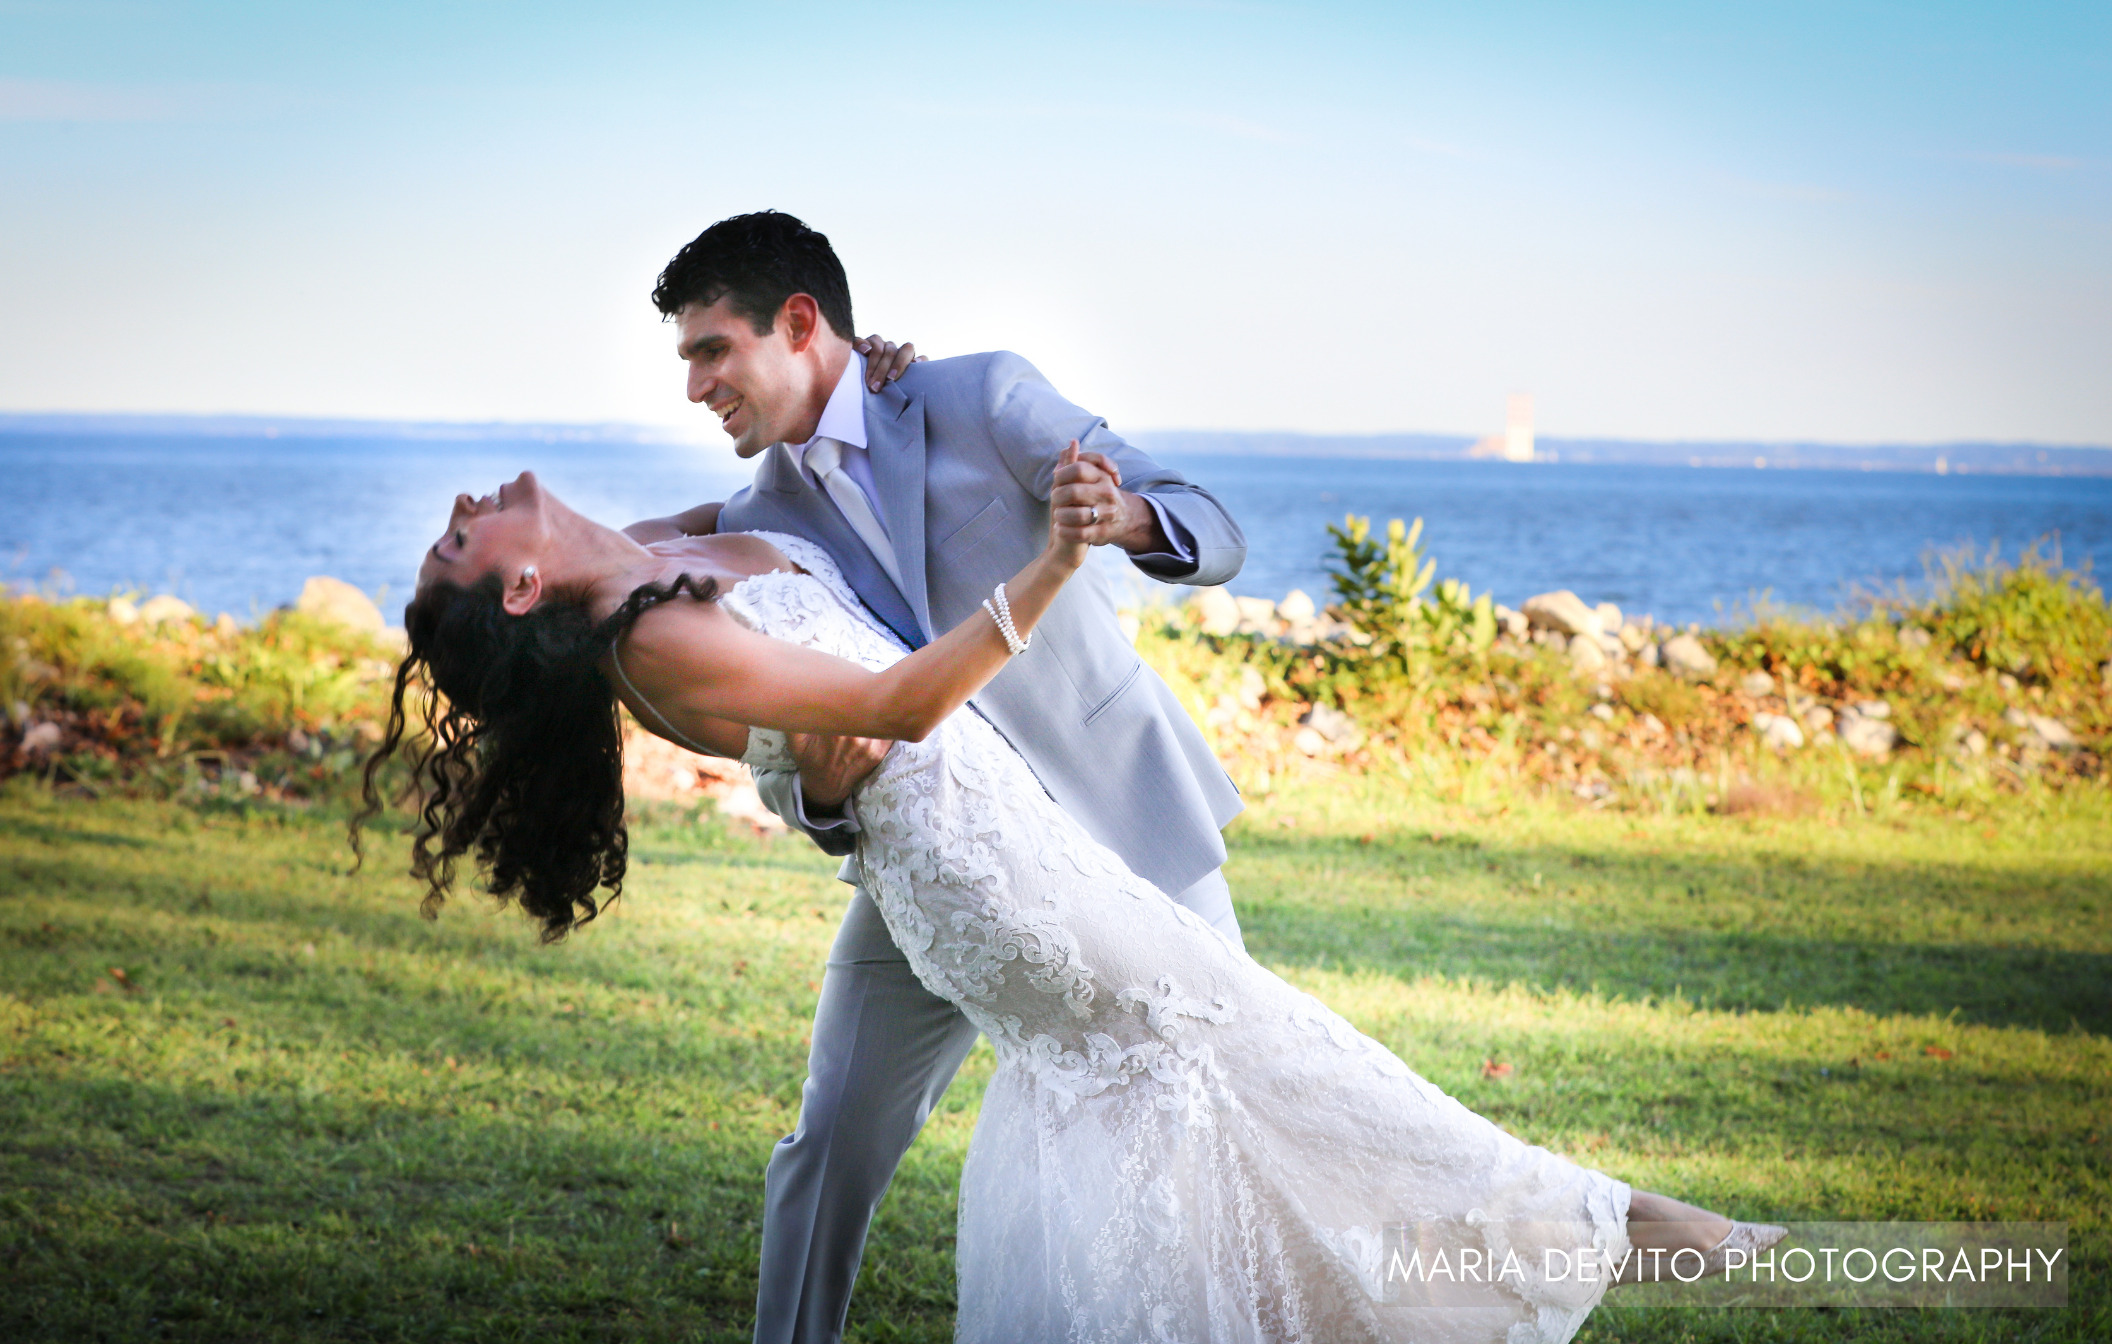 Bride and groom smiling in happy embrace on lawn in front of ocean backdrop.